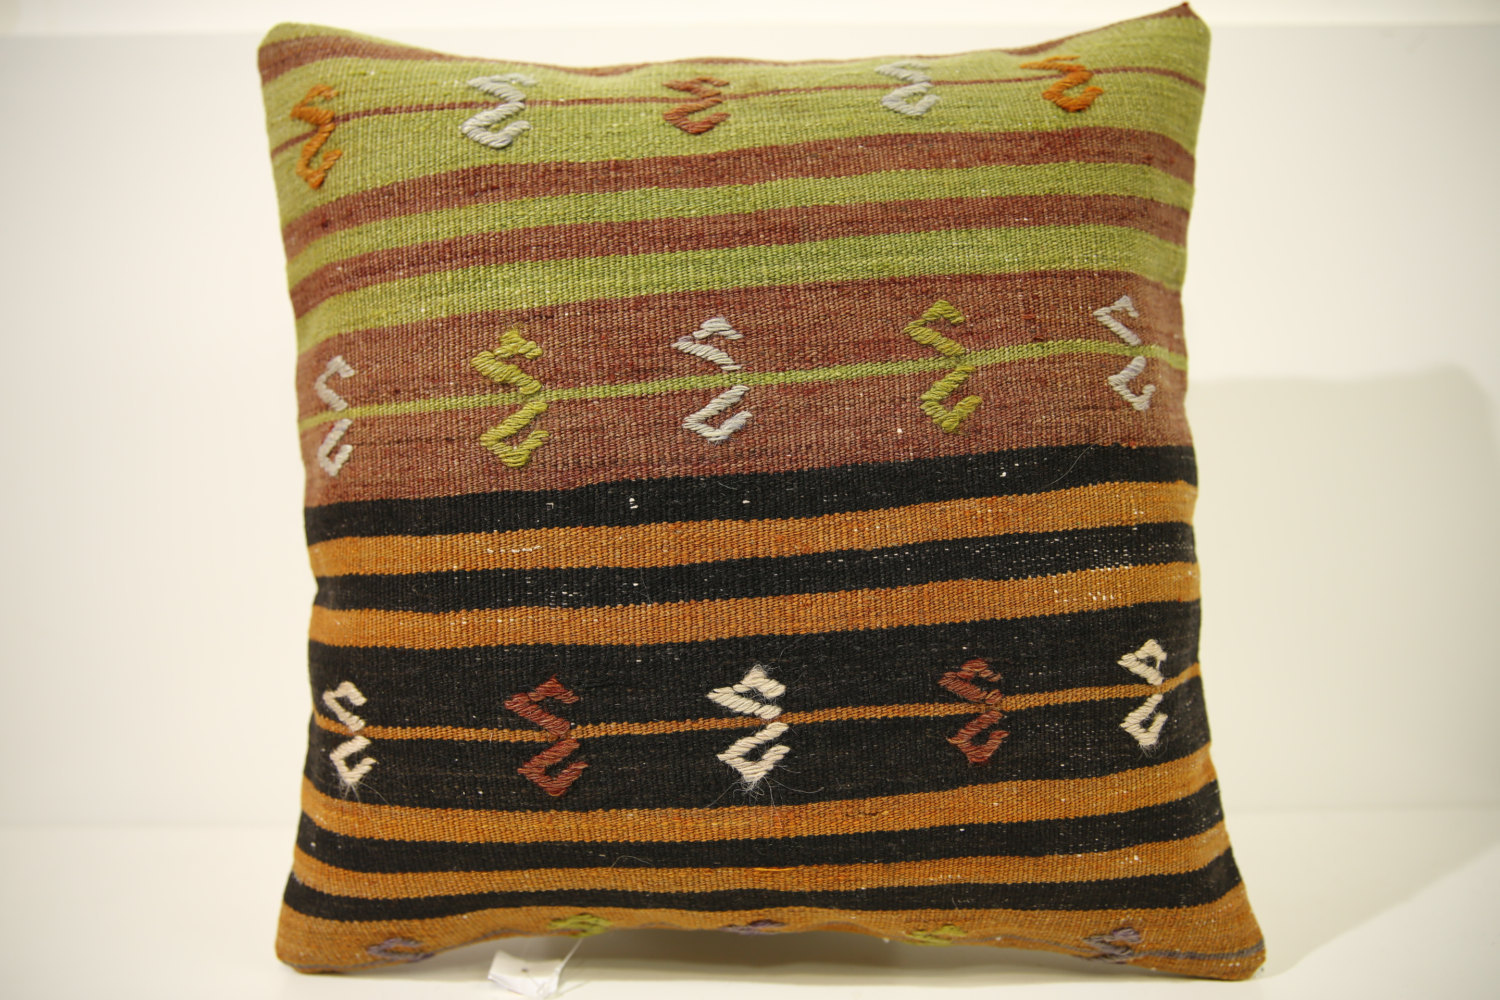 Kilim Pillows | 16x16 | Turkish pillows | 1520 | Accent Pillow,Decorative Pillow